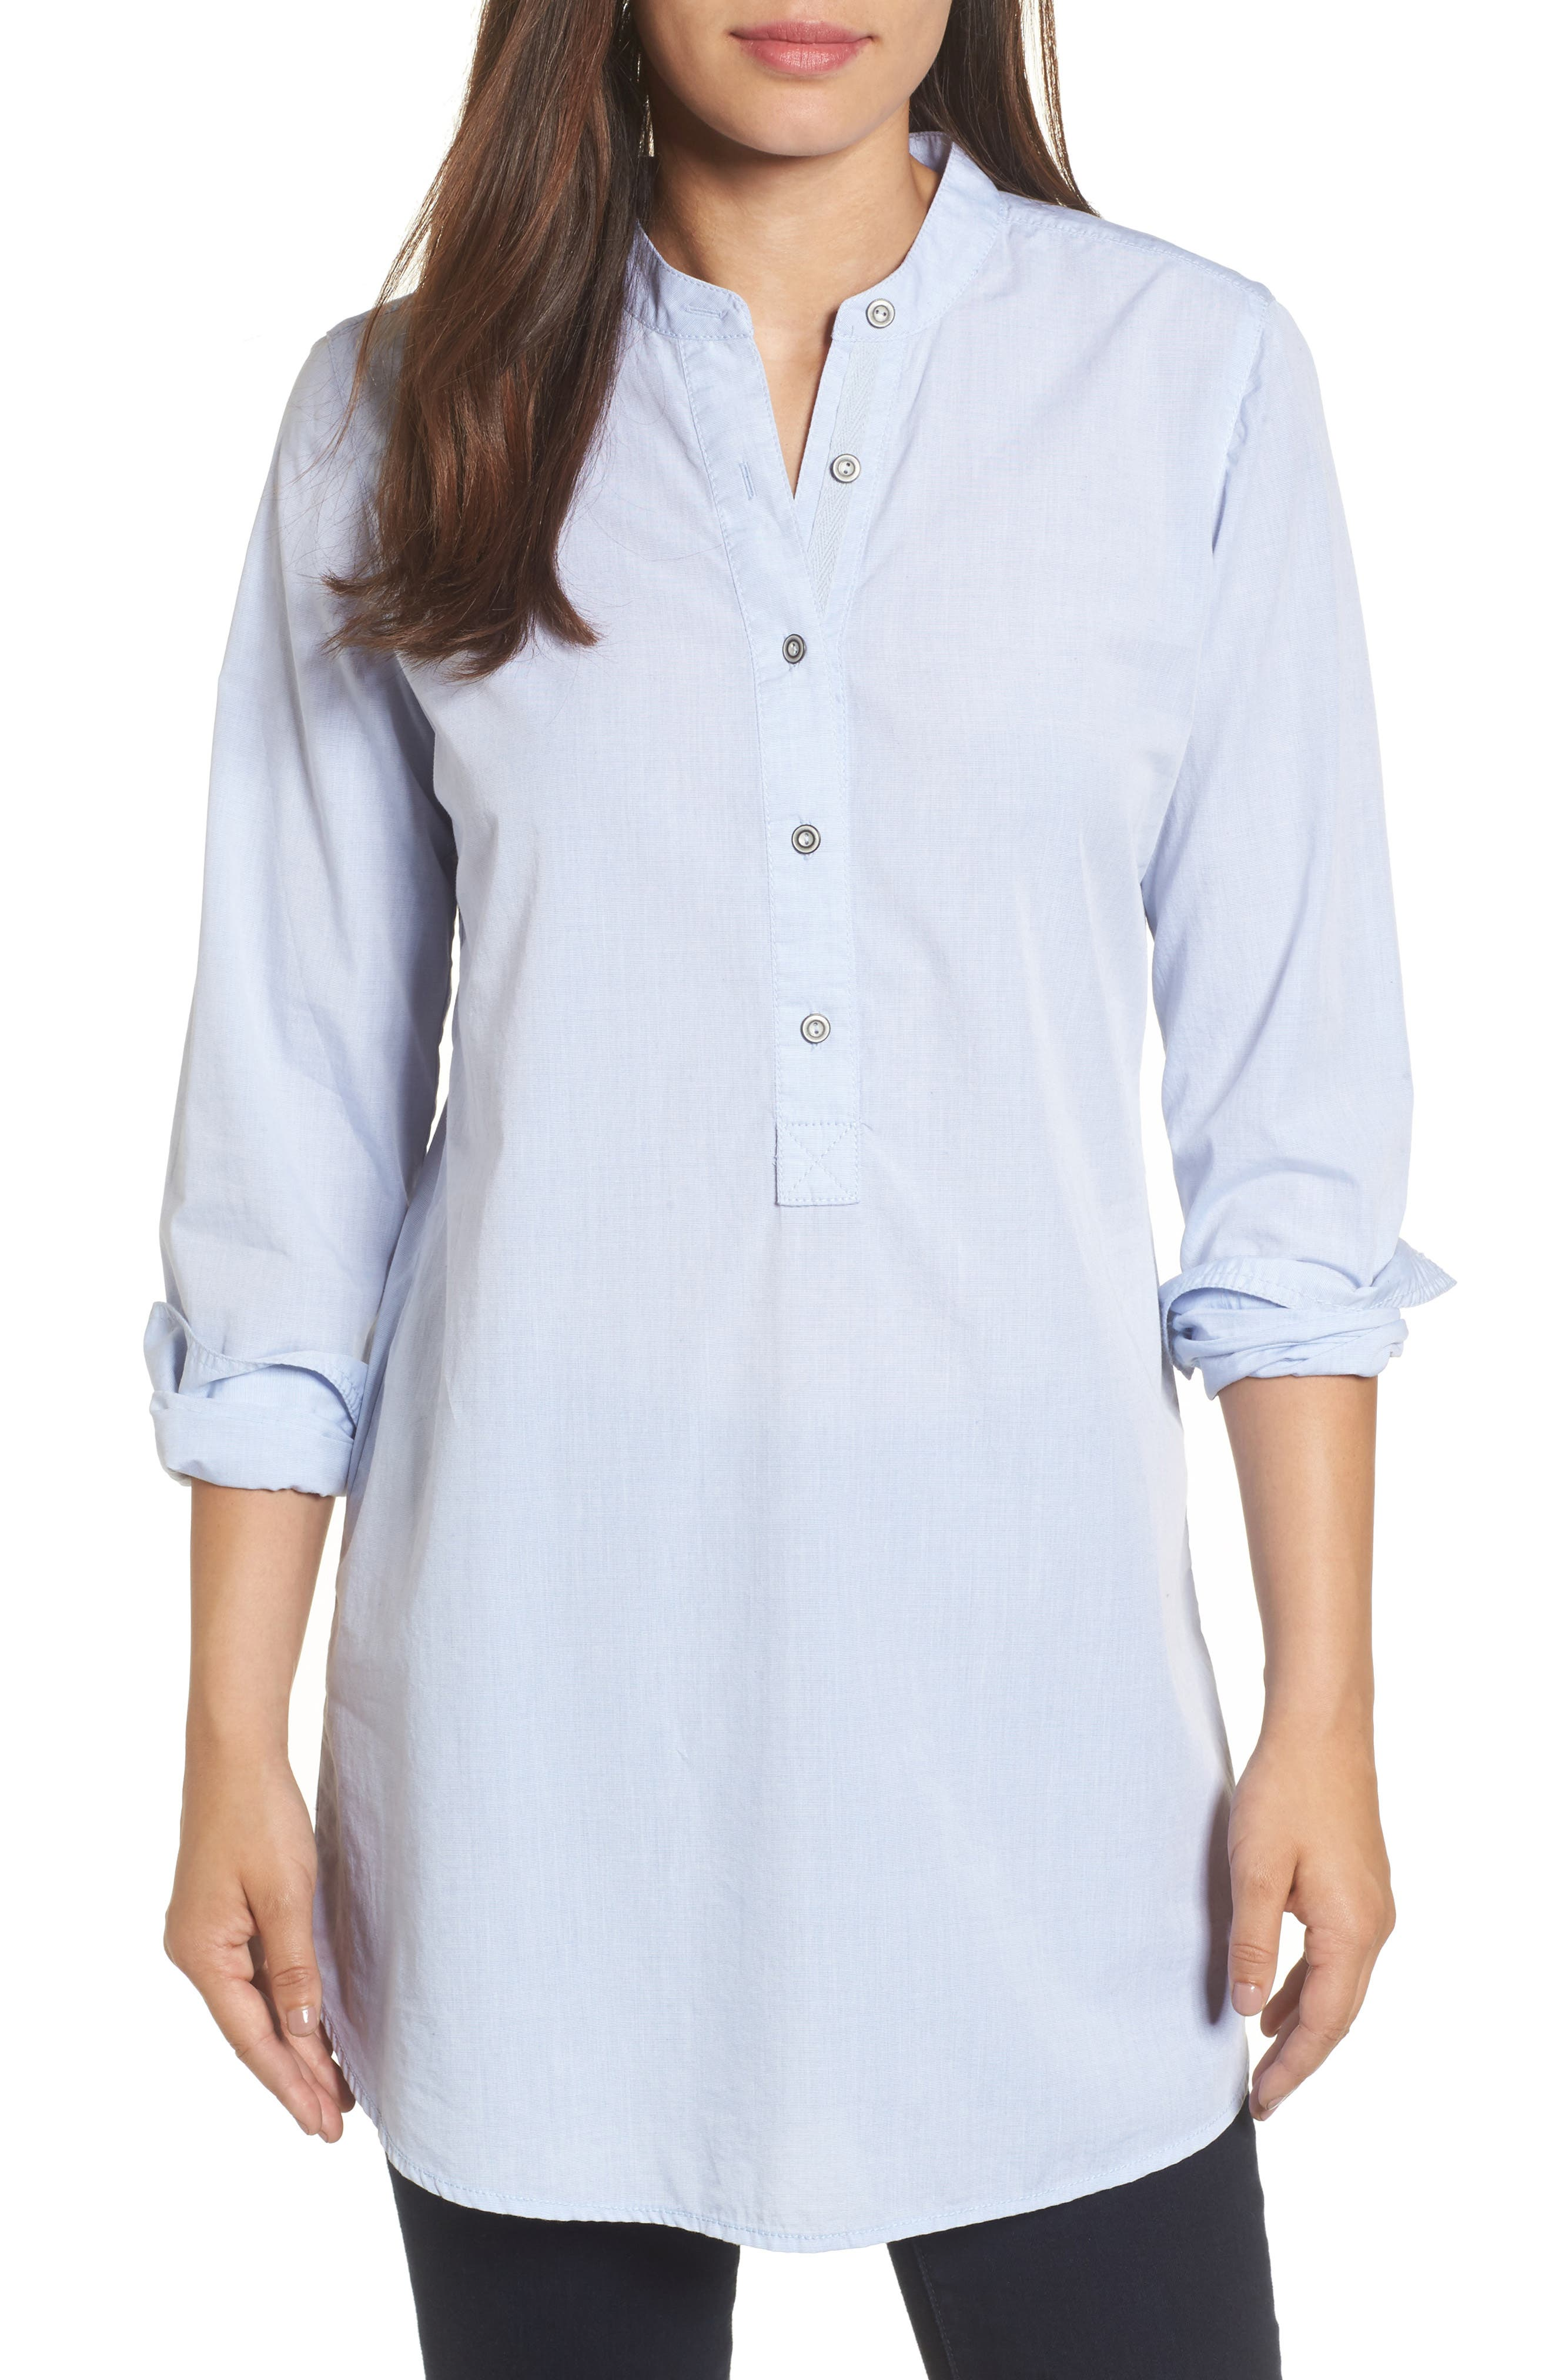 Alternate Image 1 Selected - Caslon® Popover Tunic Shirt (Regular & Petite)